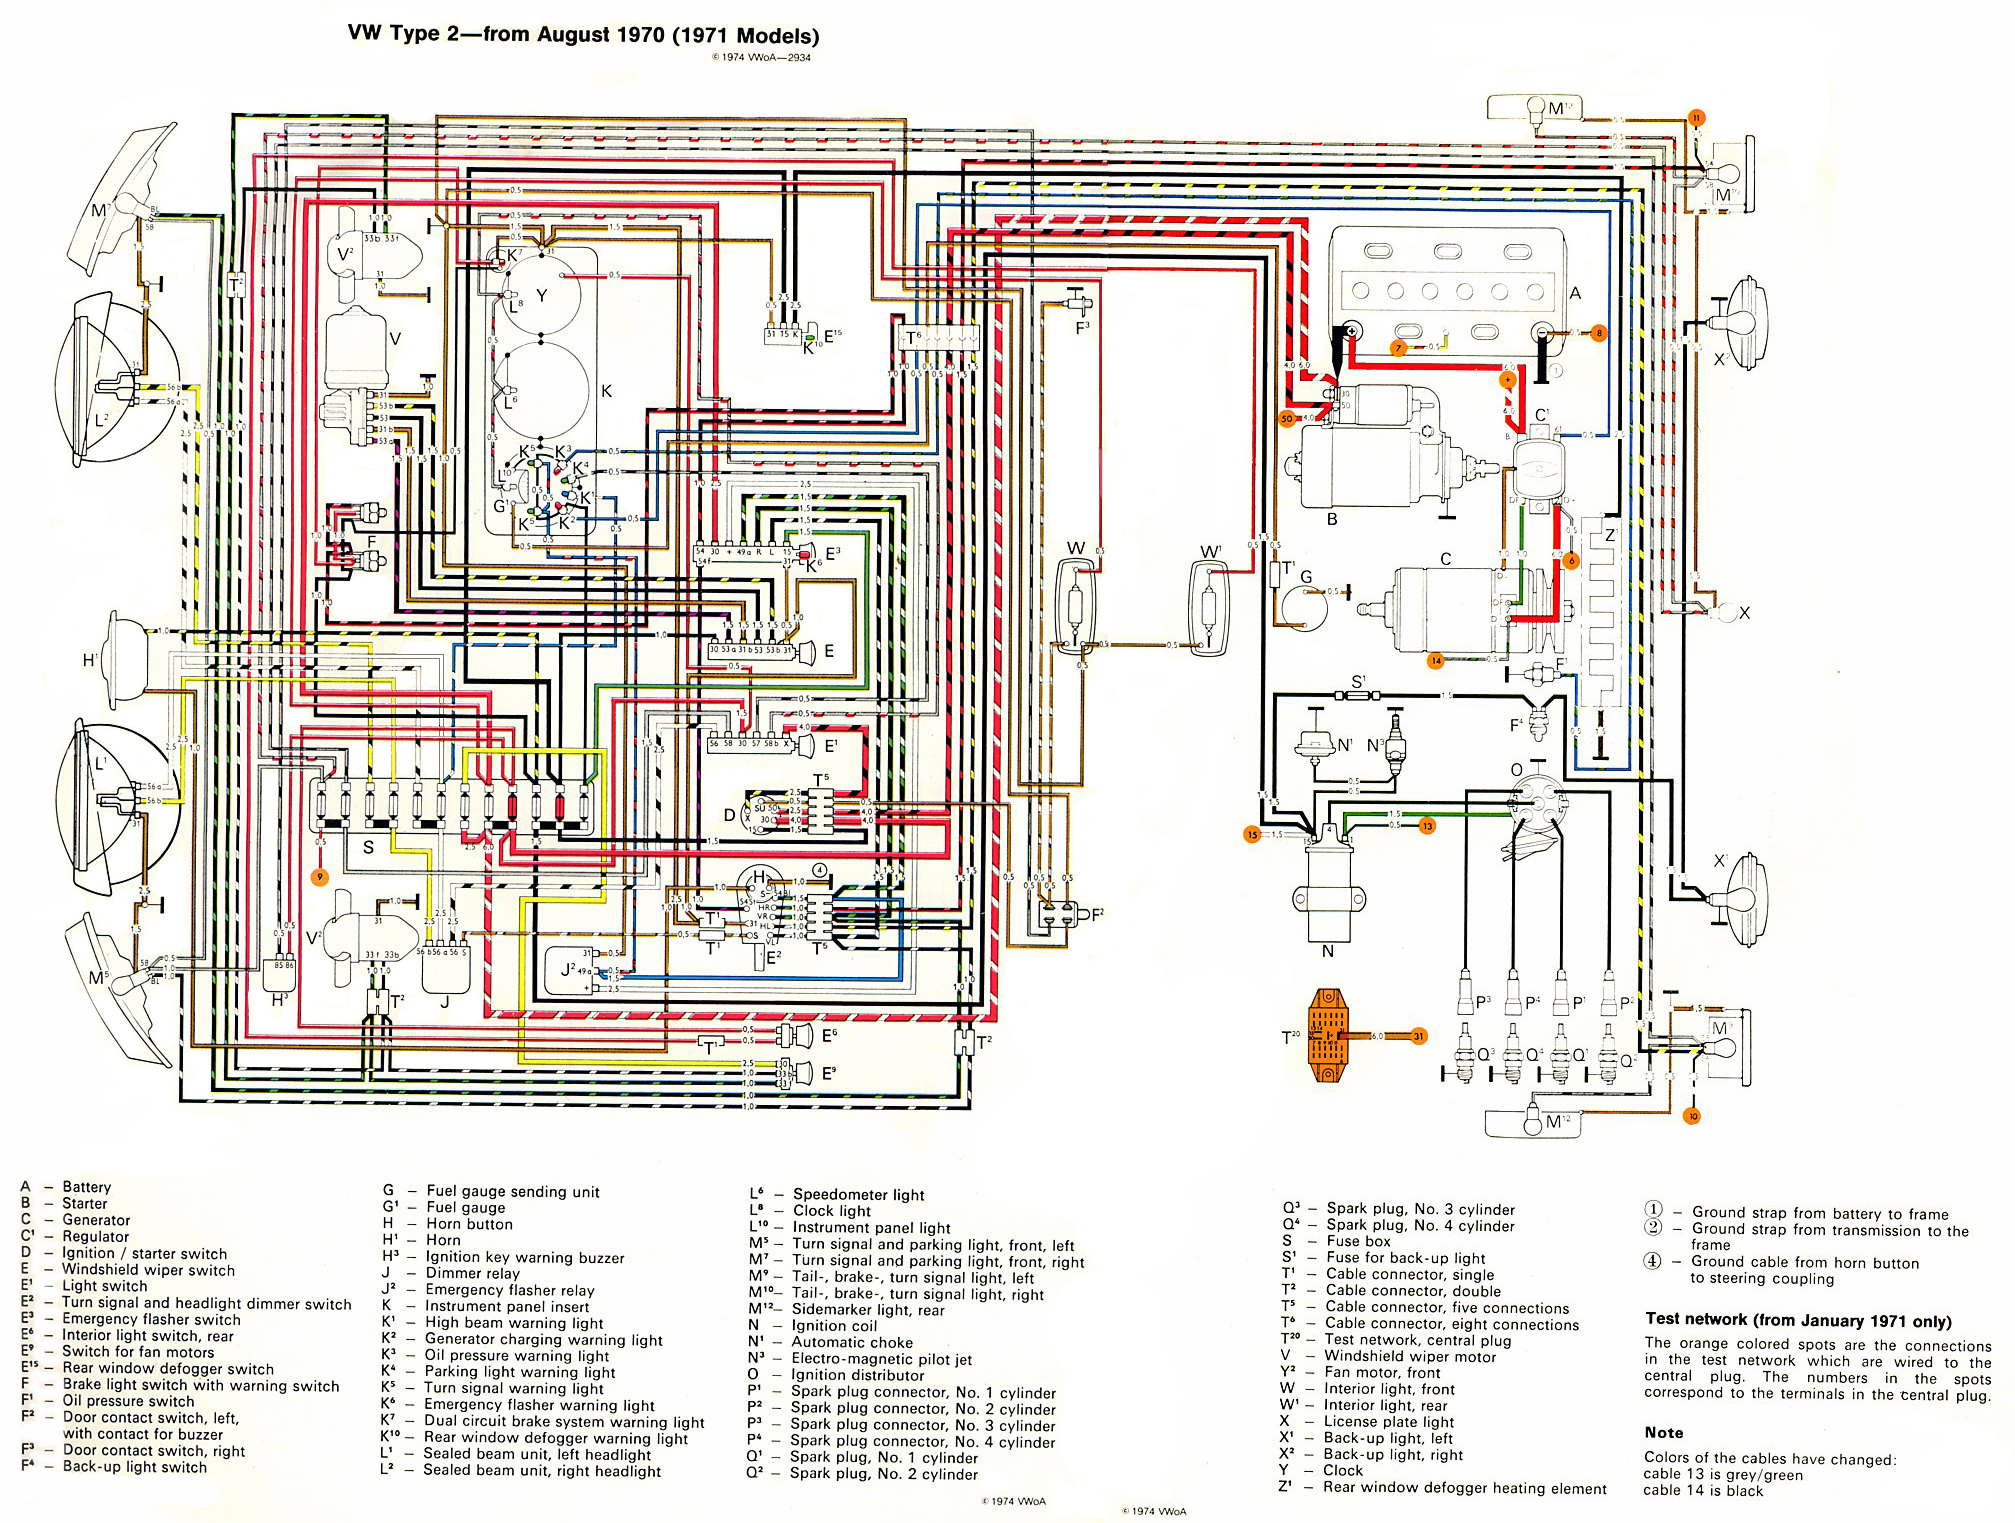 baybus_71_fixed vw t4 horn wiring diagram efcaviation com vw t4 fuse box wiring diagram at arjmand.co